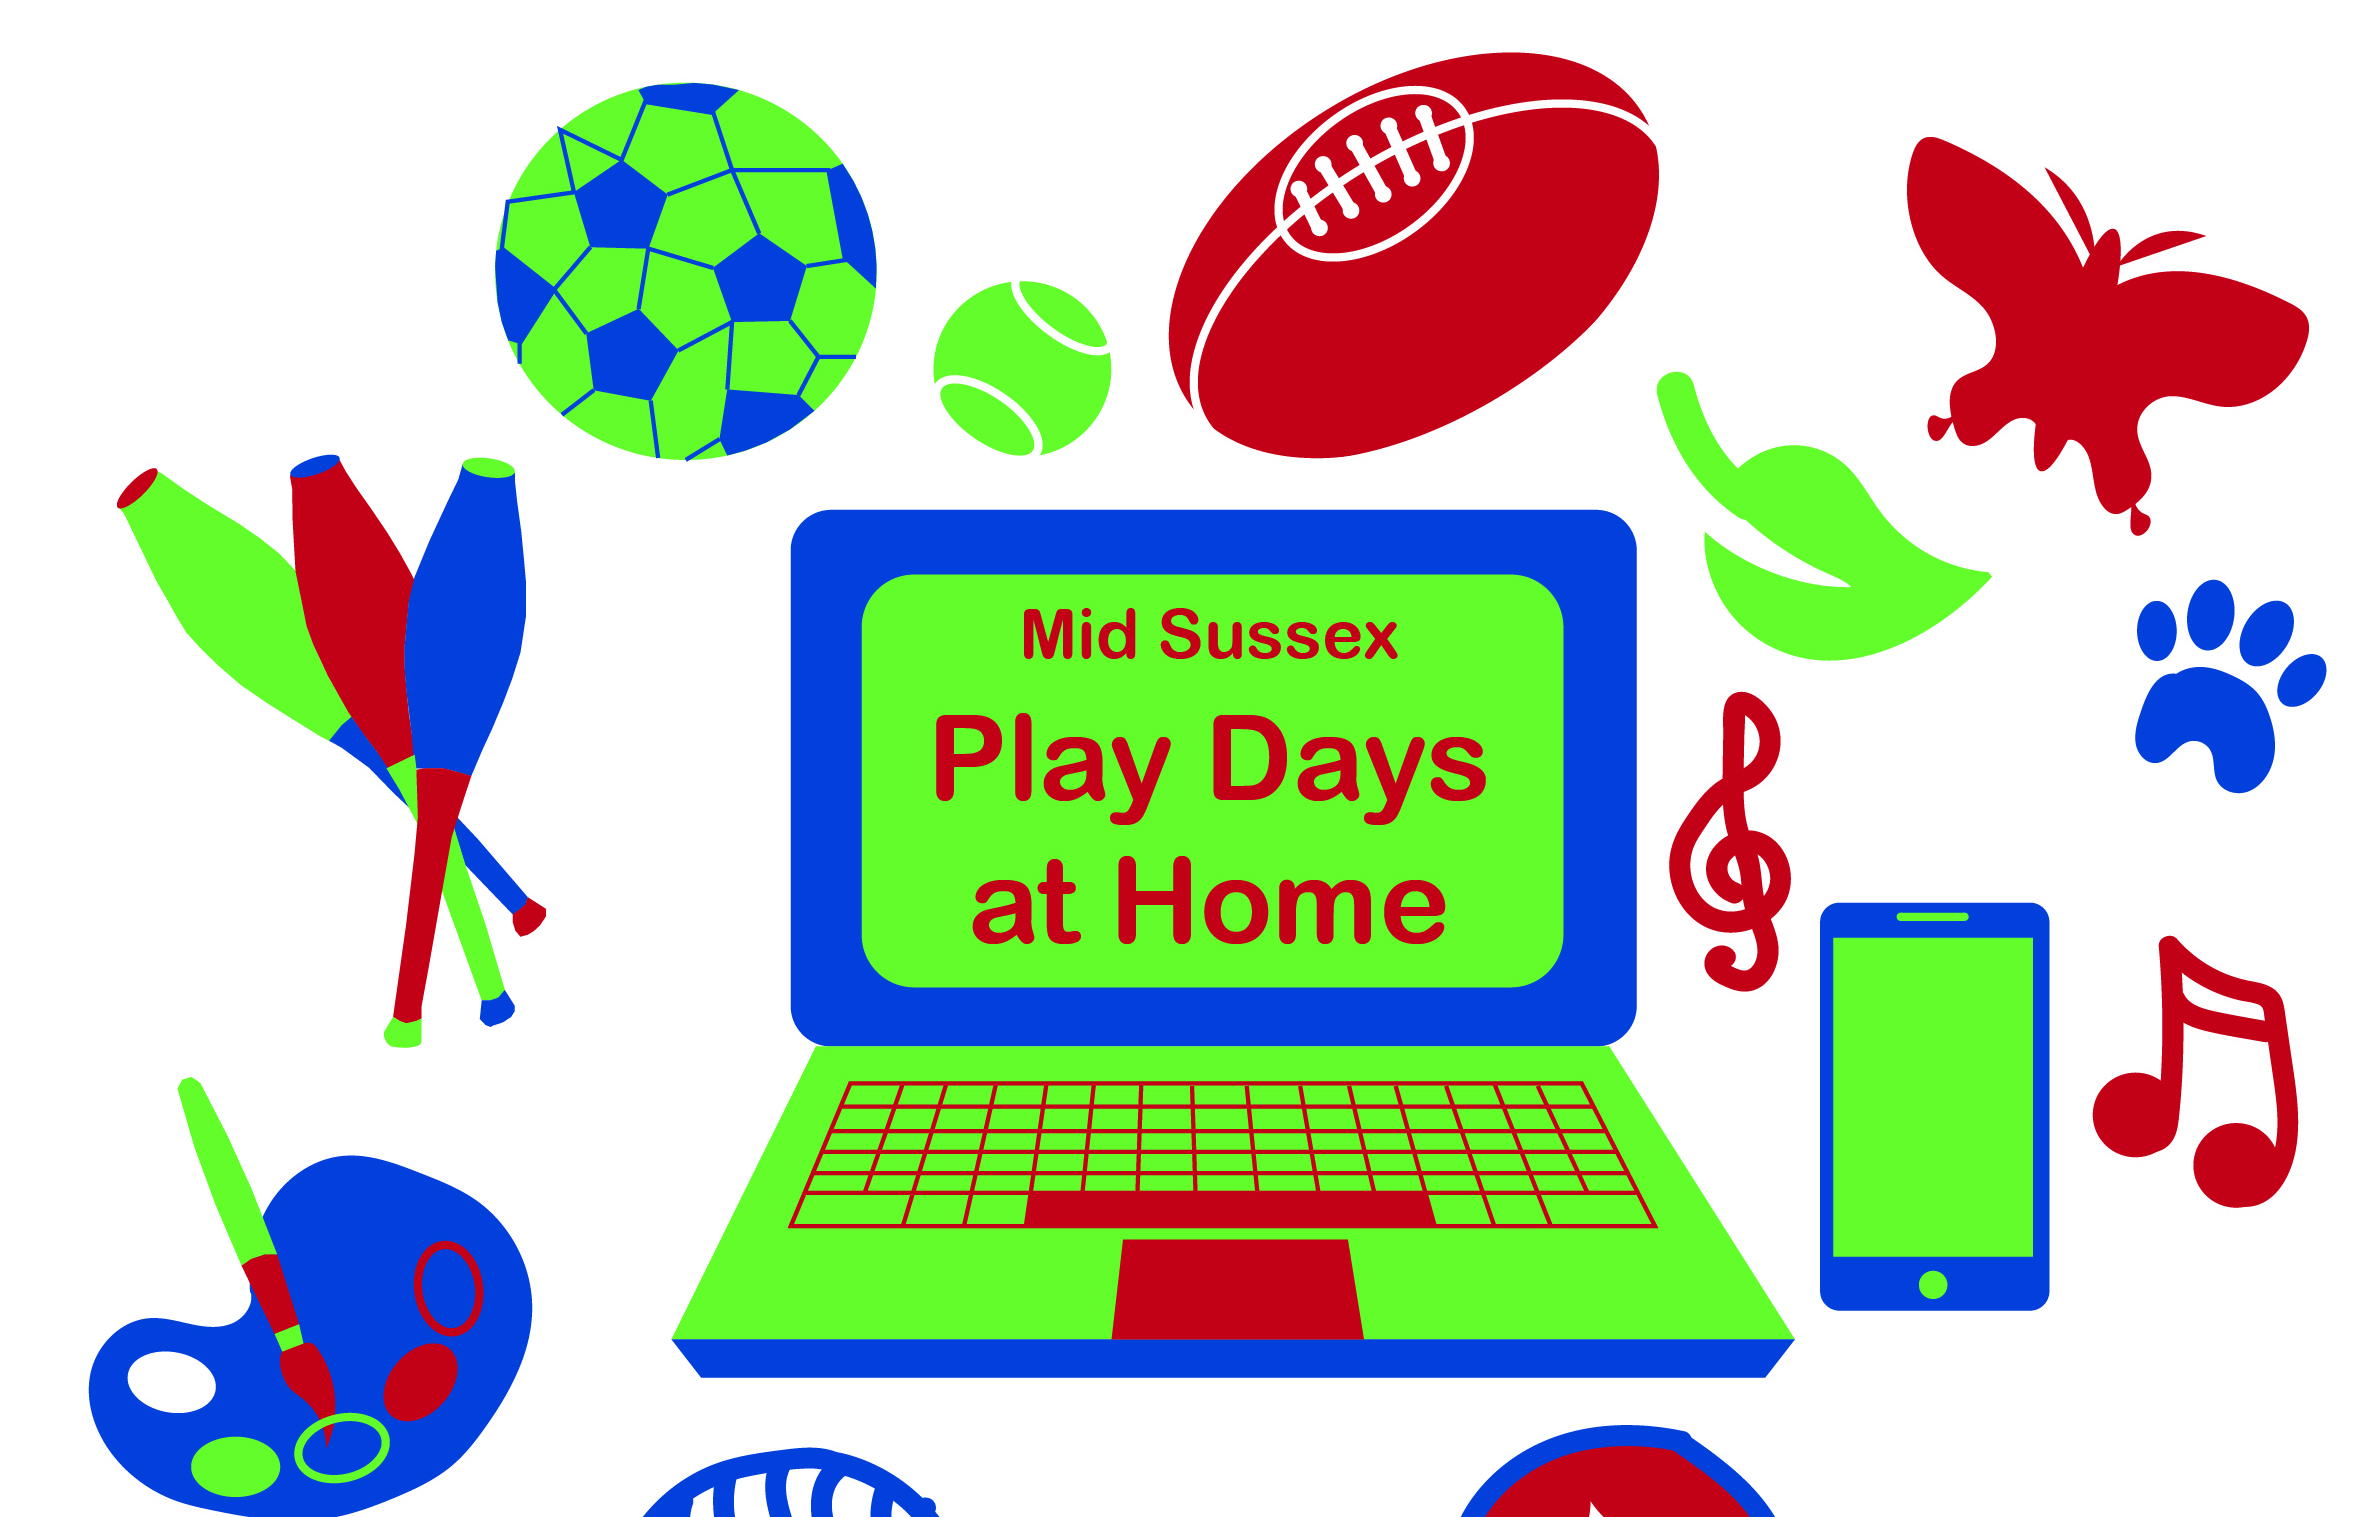 Play Days at Home